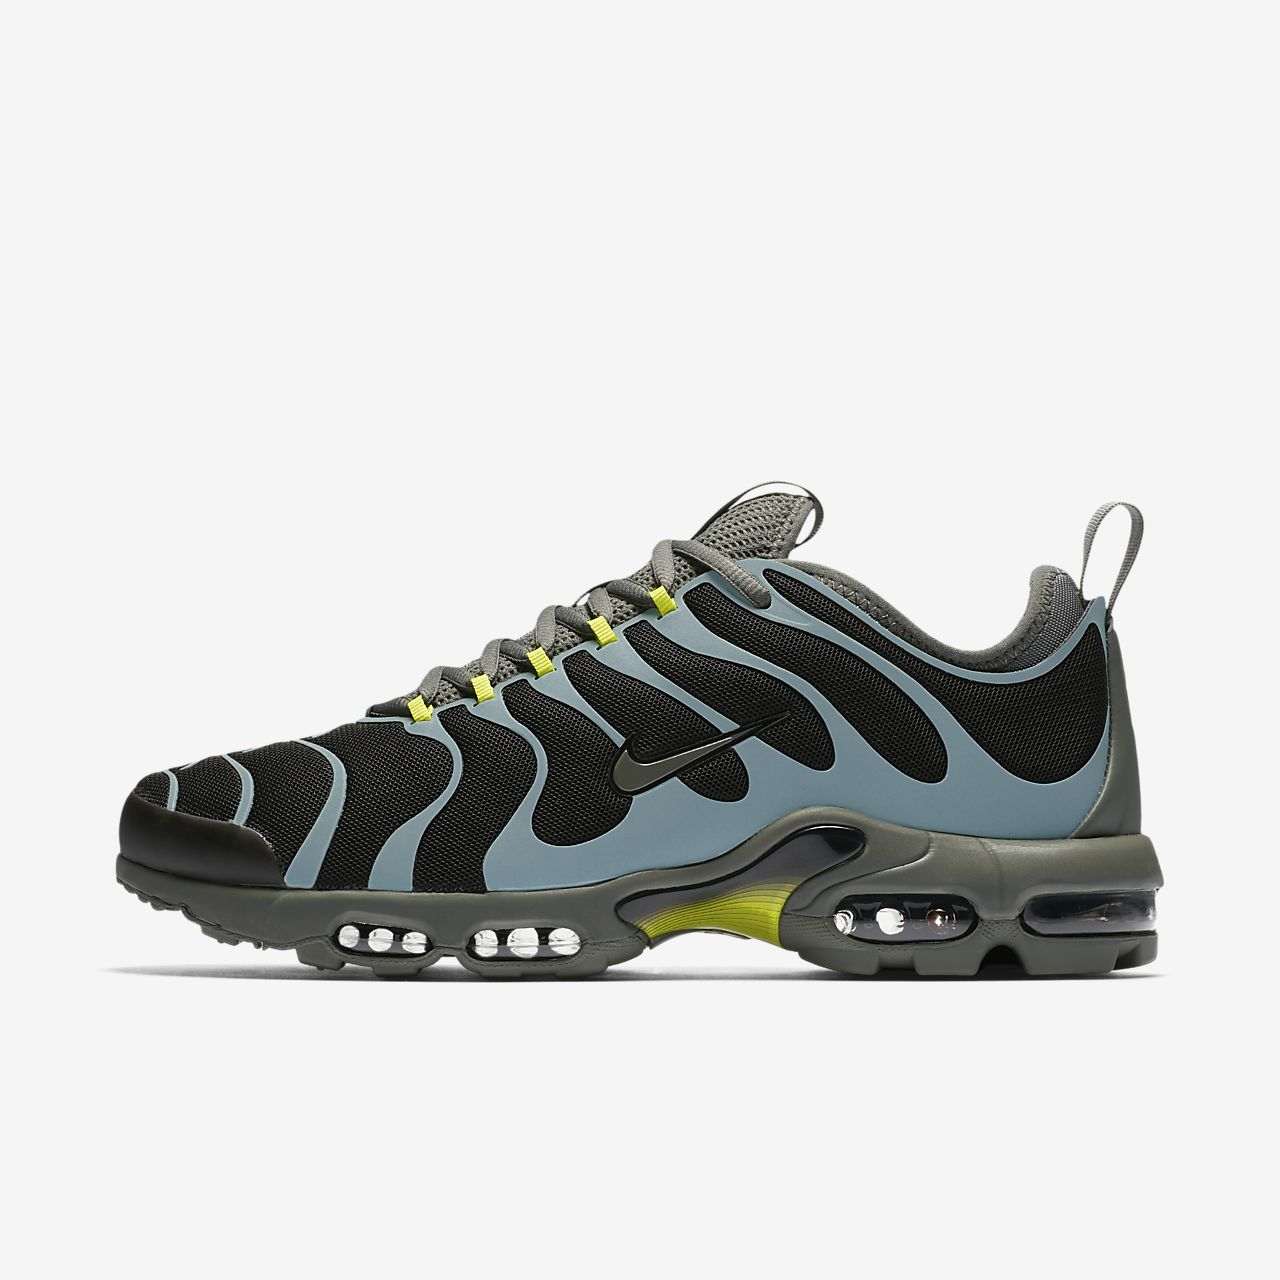 nike air max plus tn ultra 3m